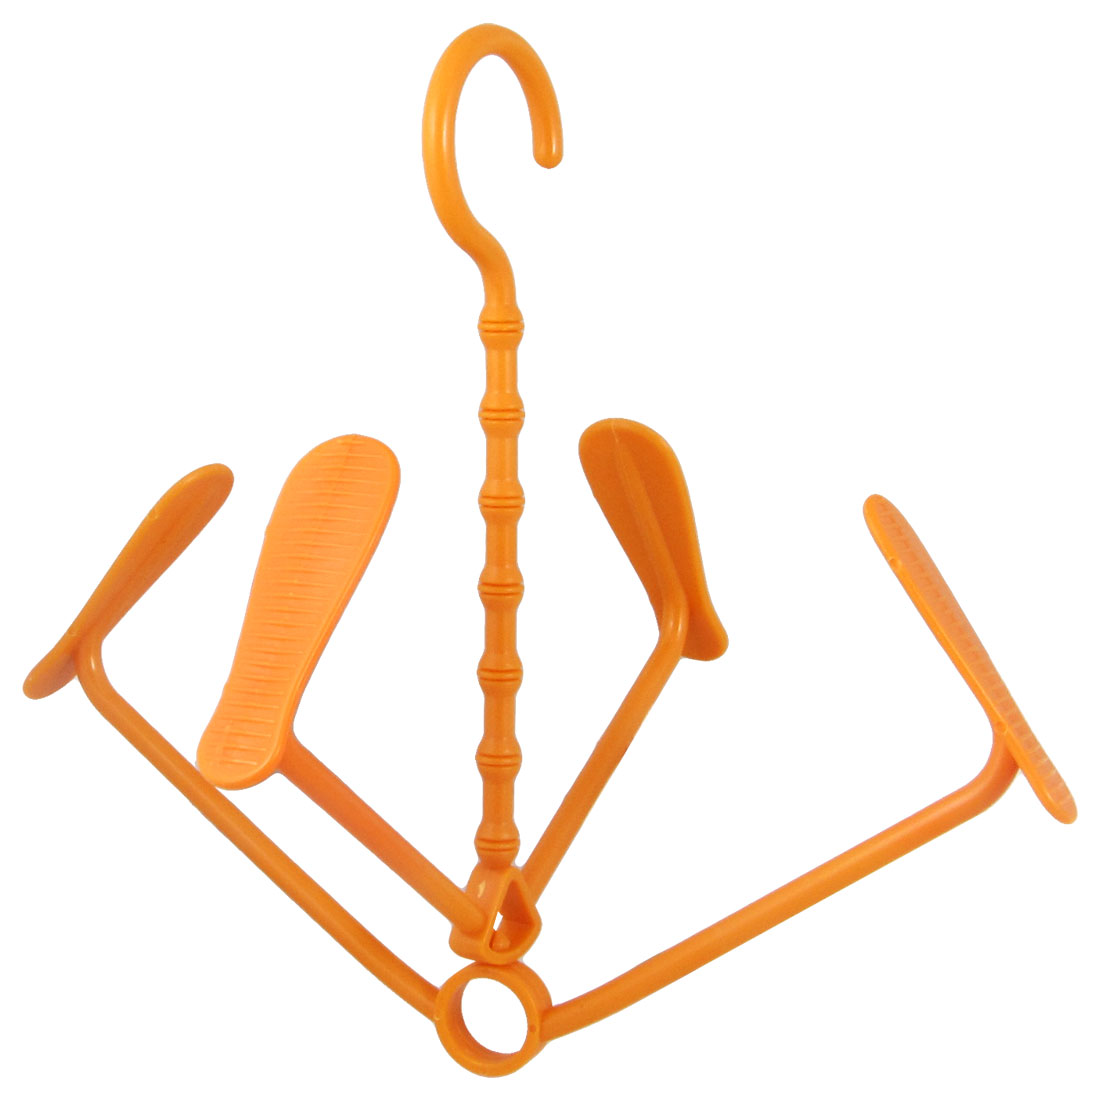 Flexible Plastic Shoes Drying Rack Shelf Hanger Hook Orange